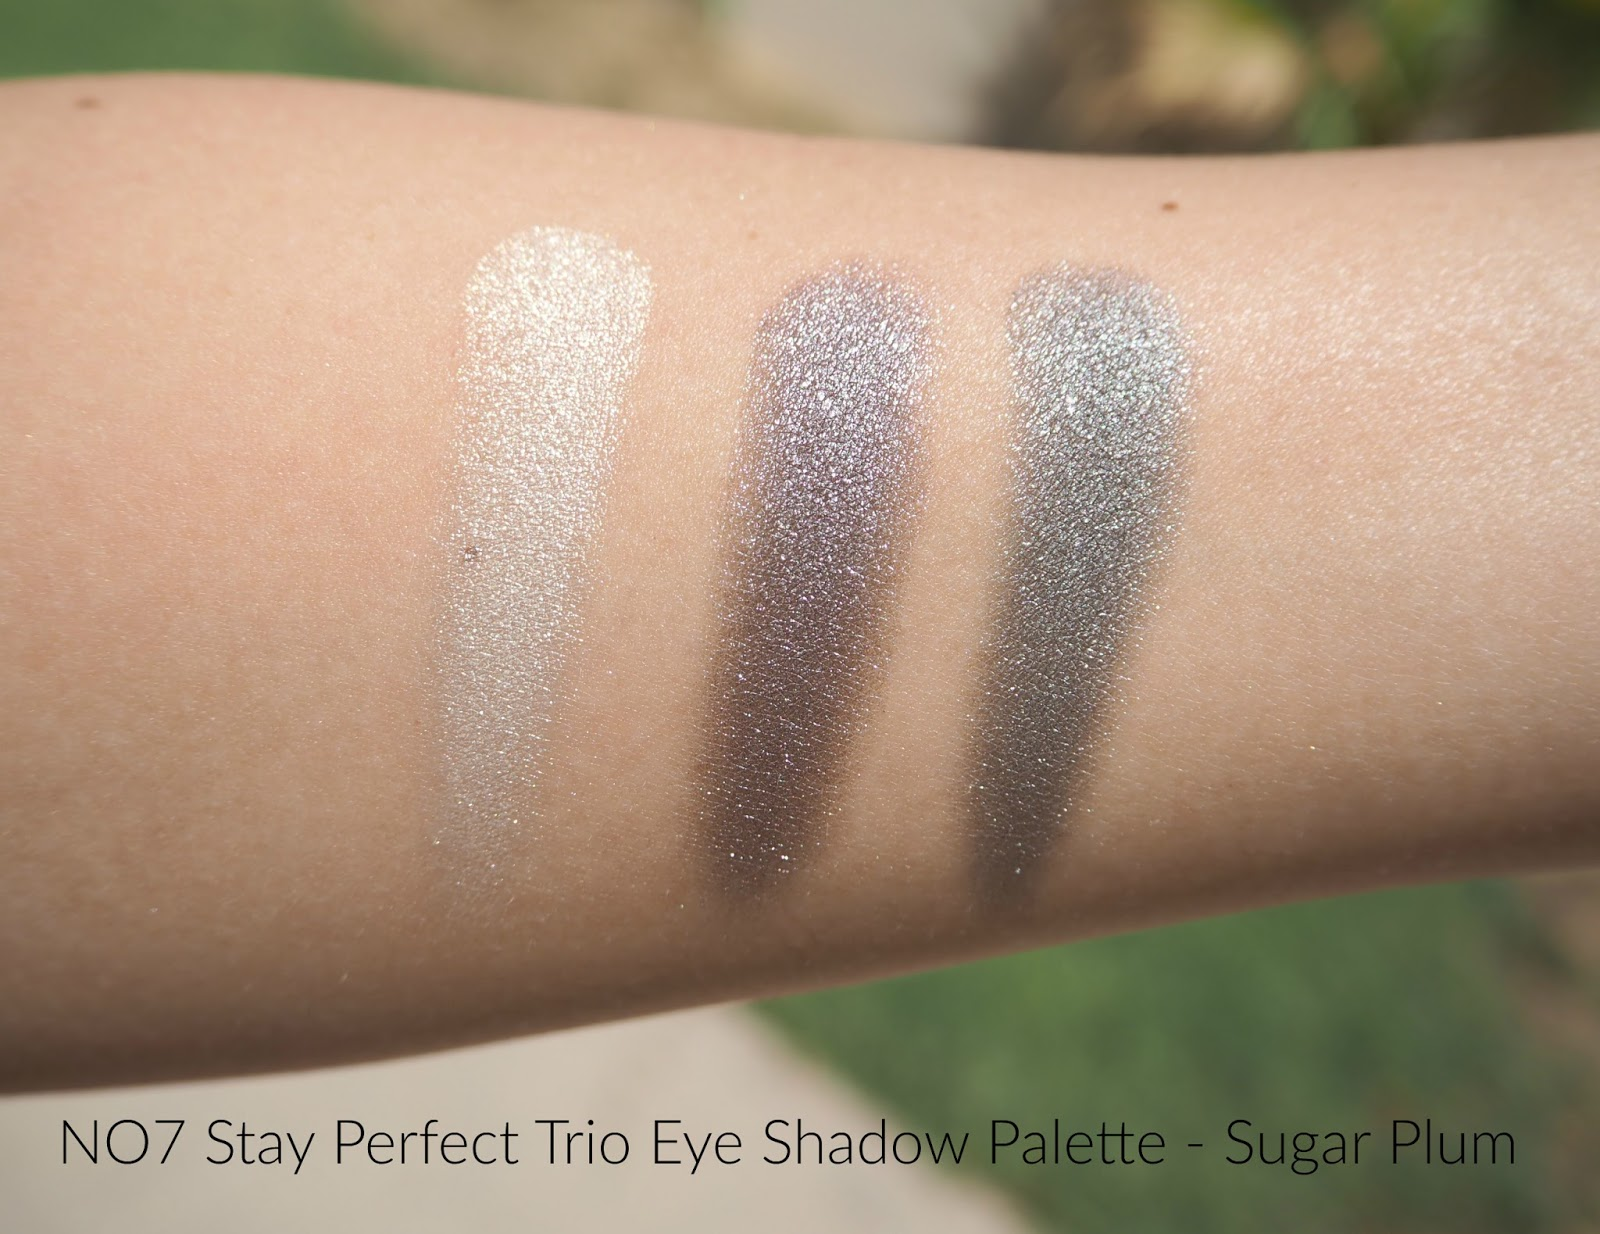 No7 Stay Perfect Trio Eye Shadow Palette Sugar Plum Review